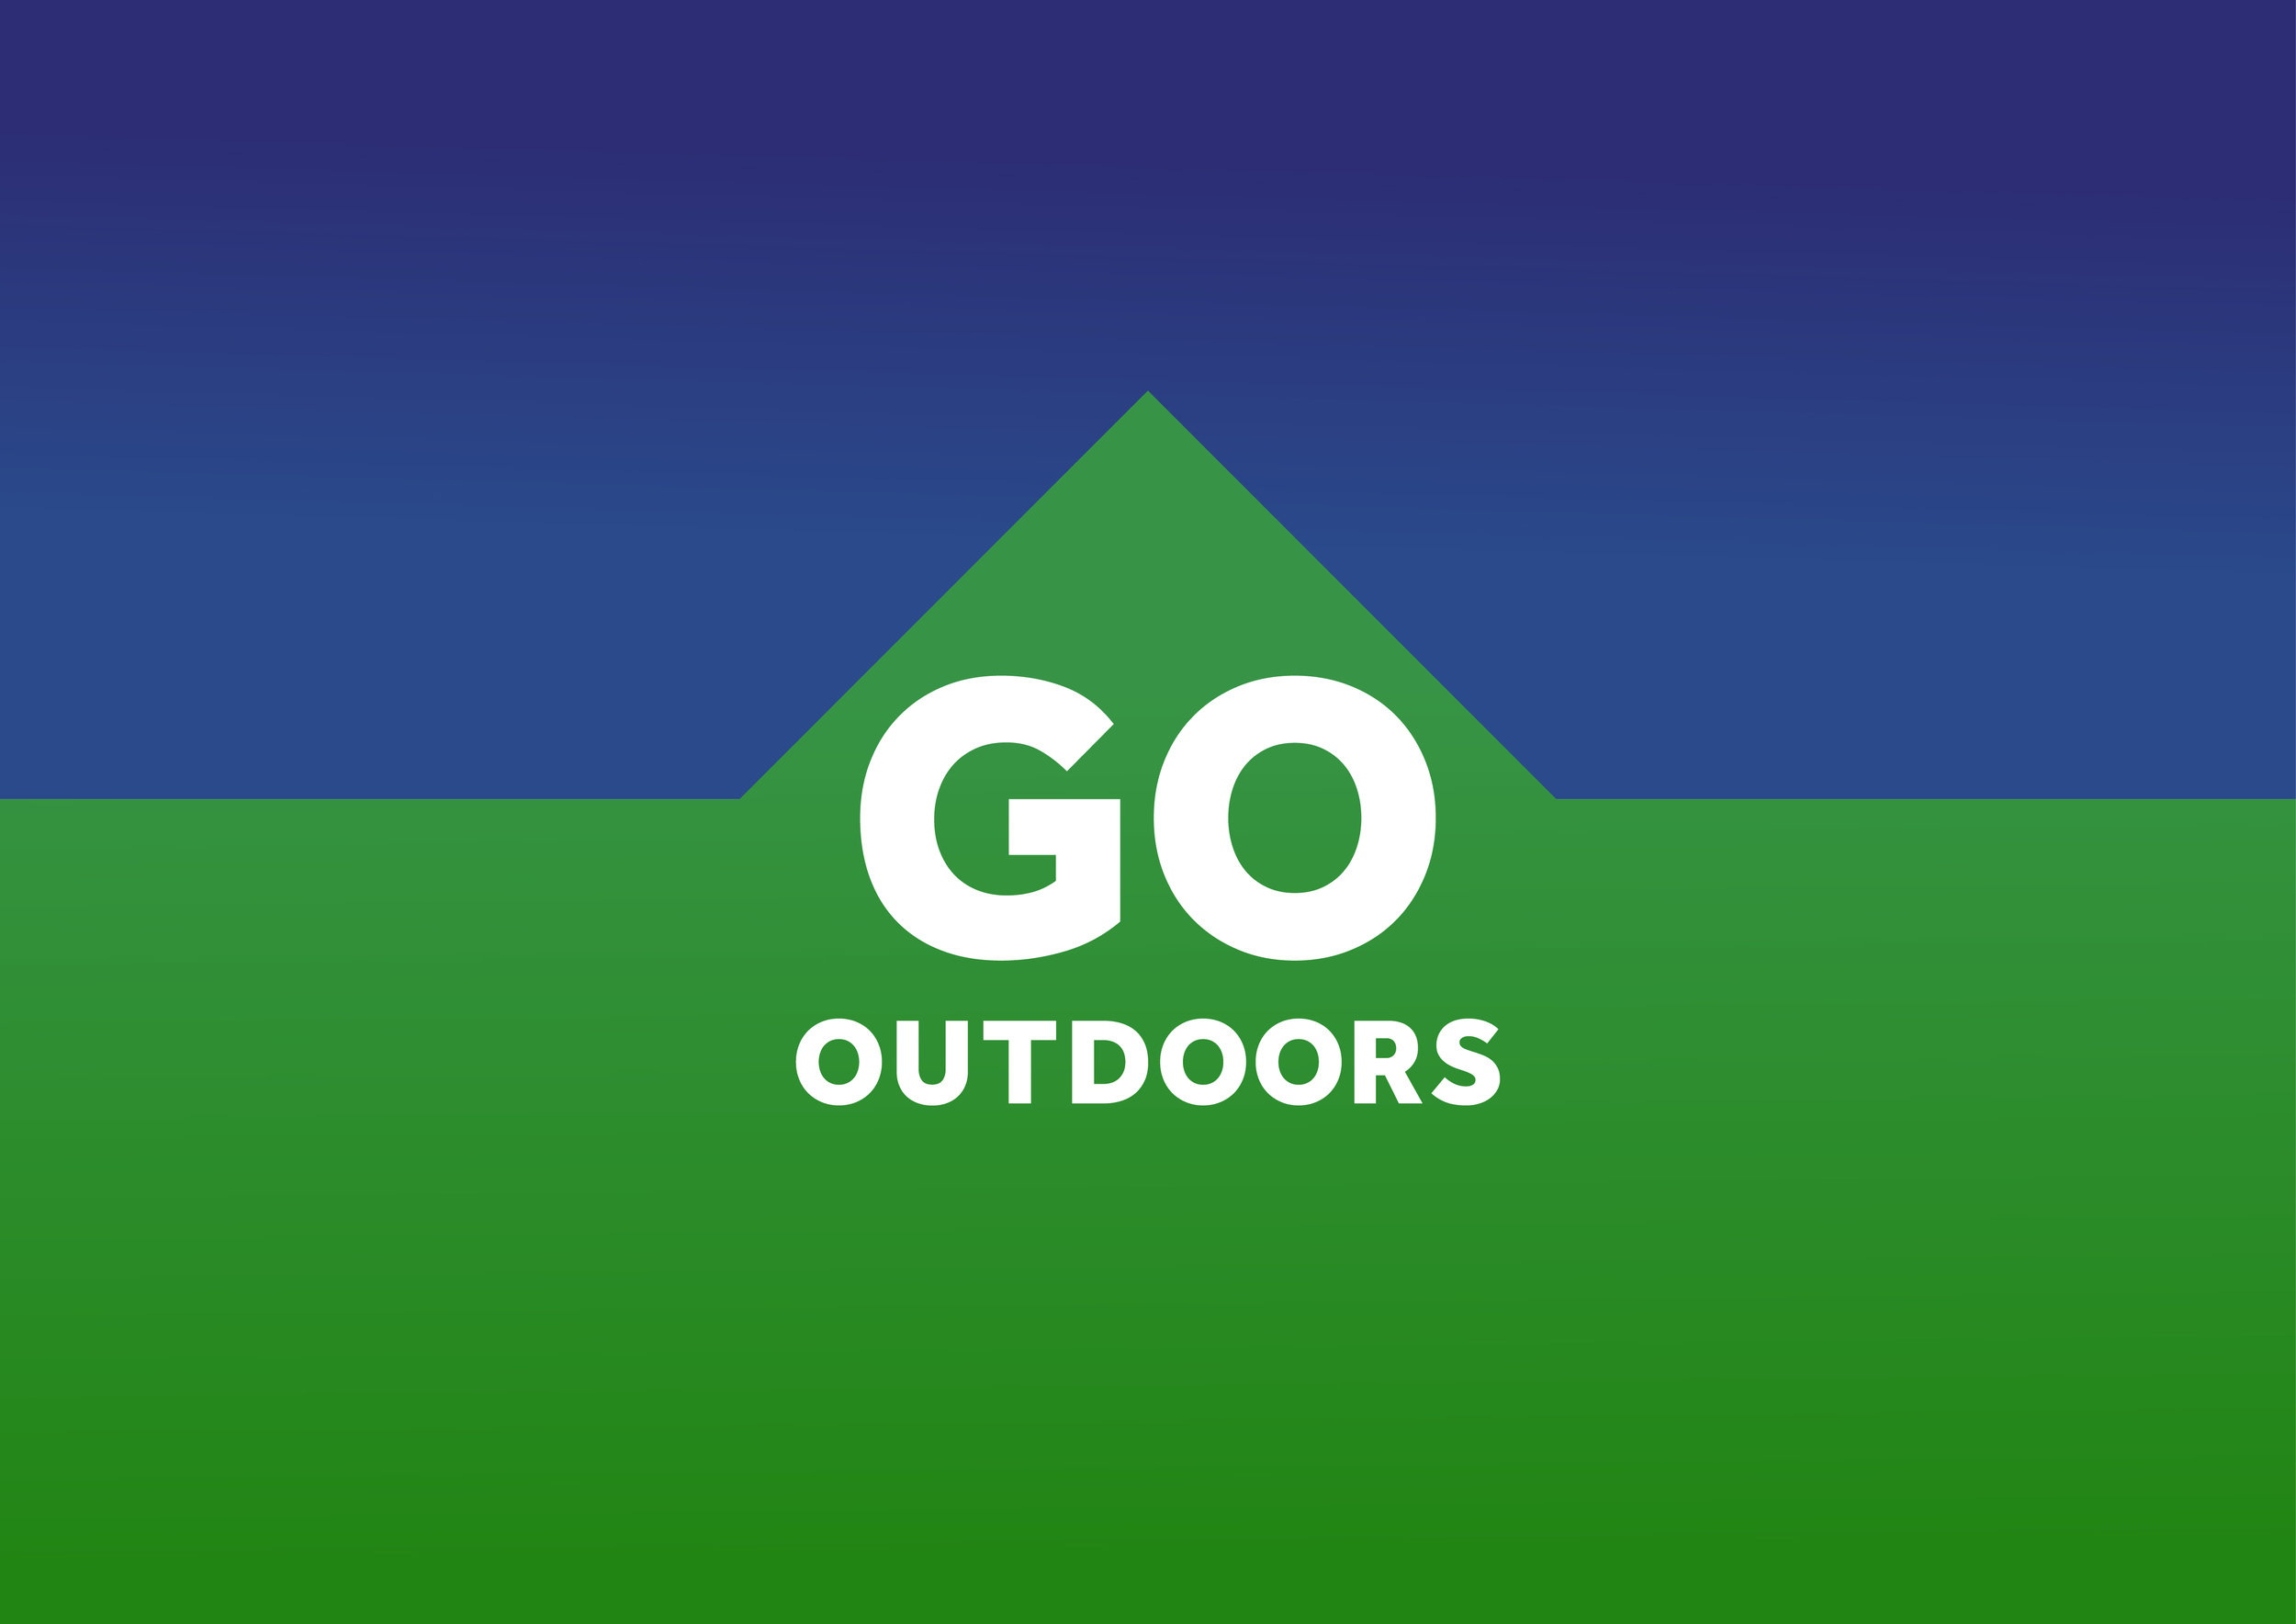 Go Outdoors Makeover 2.jpg